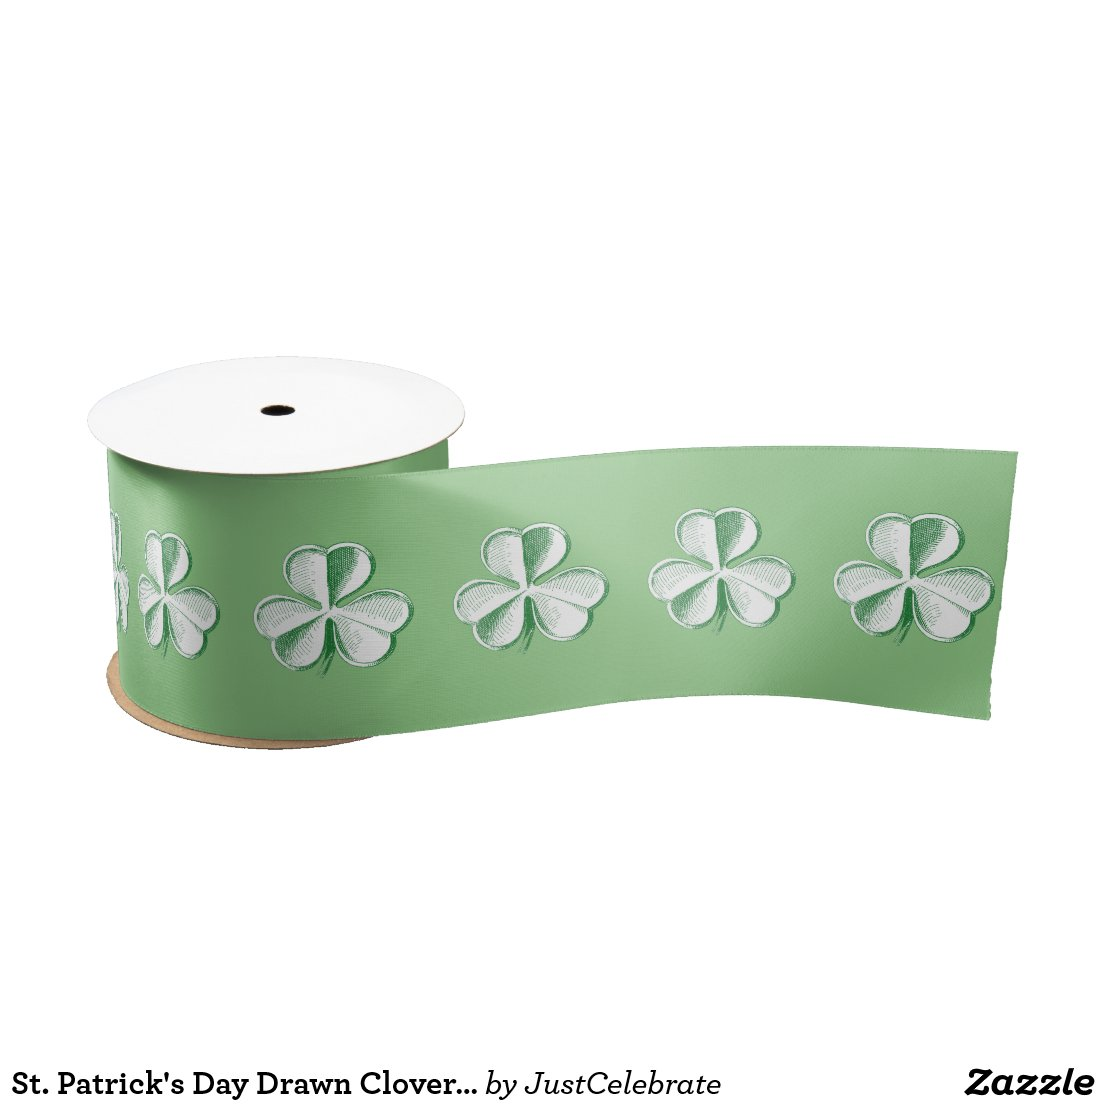 St. Patrick's Day Drawn Clover/Shamrock Satin Ribbon